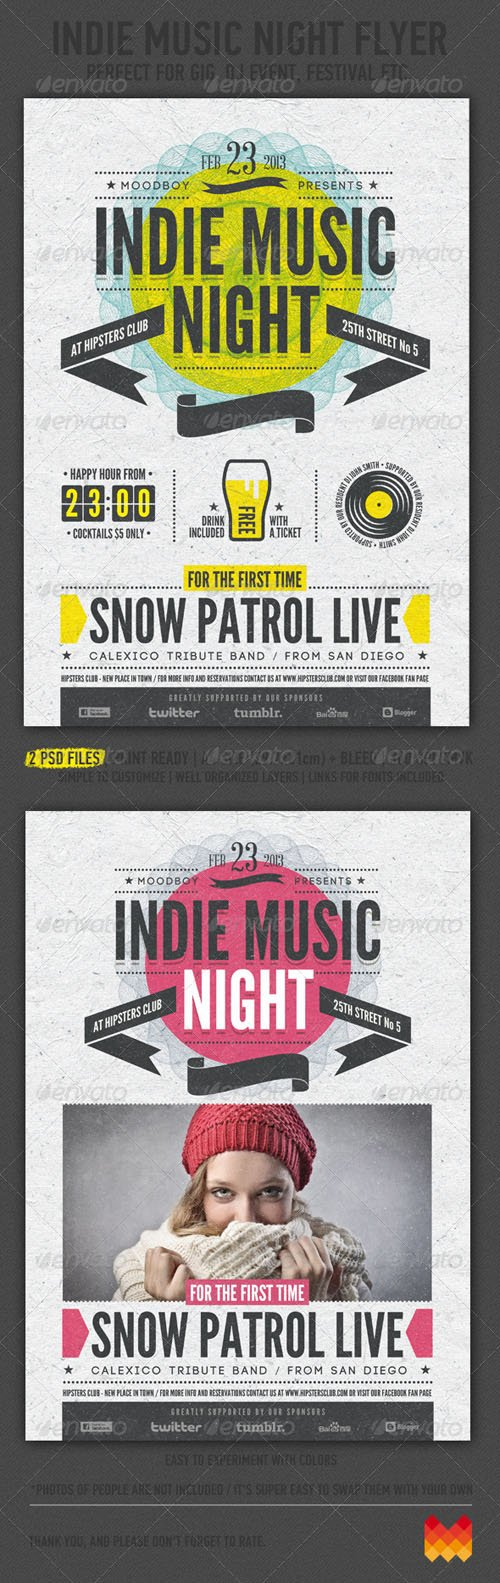 Indie Music Night Flyer / Poster 4123510